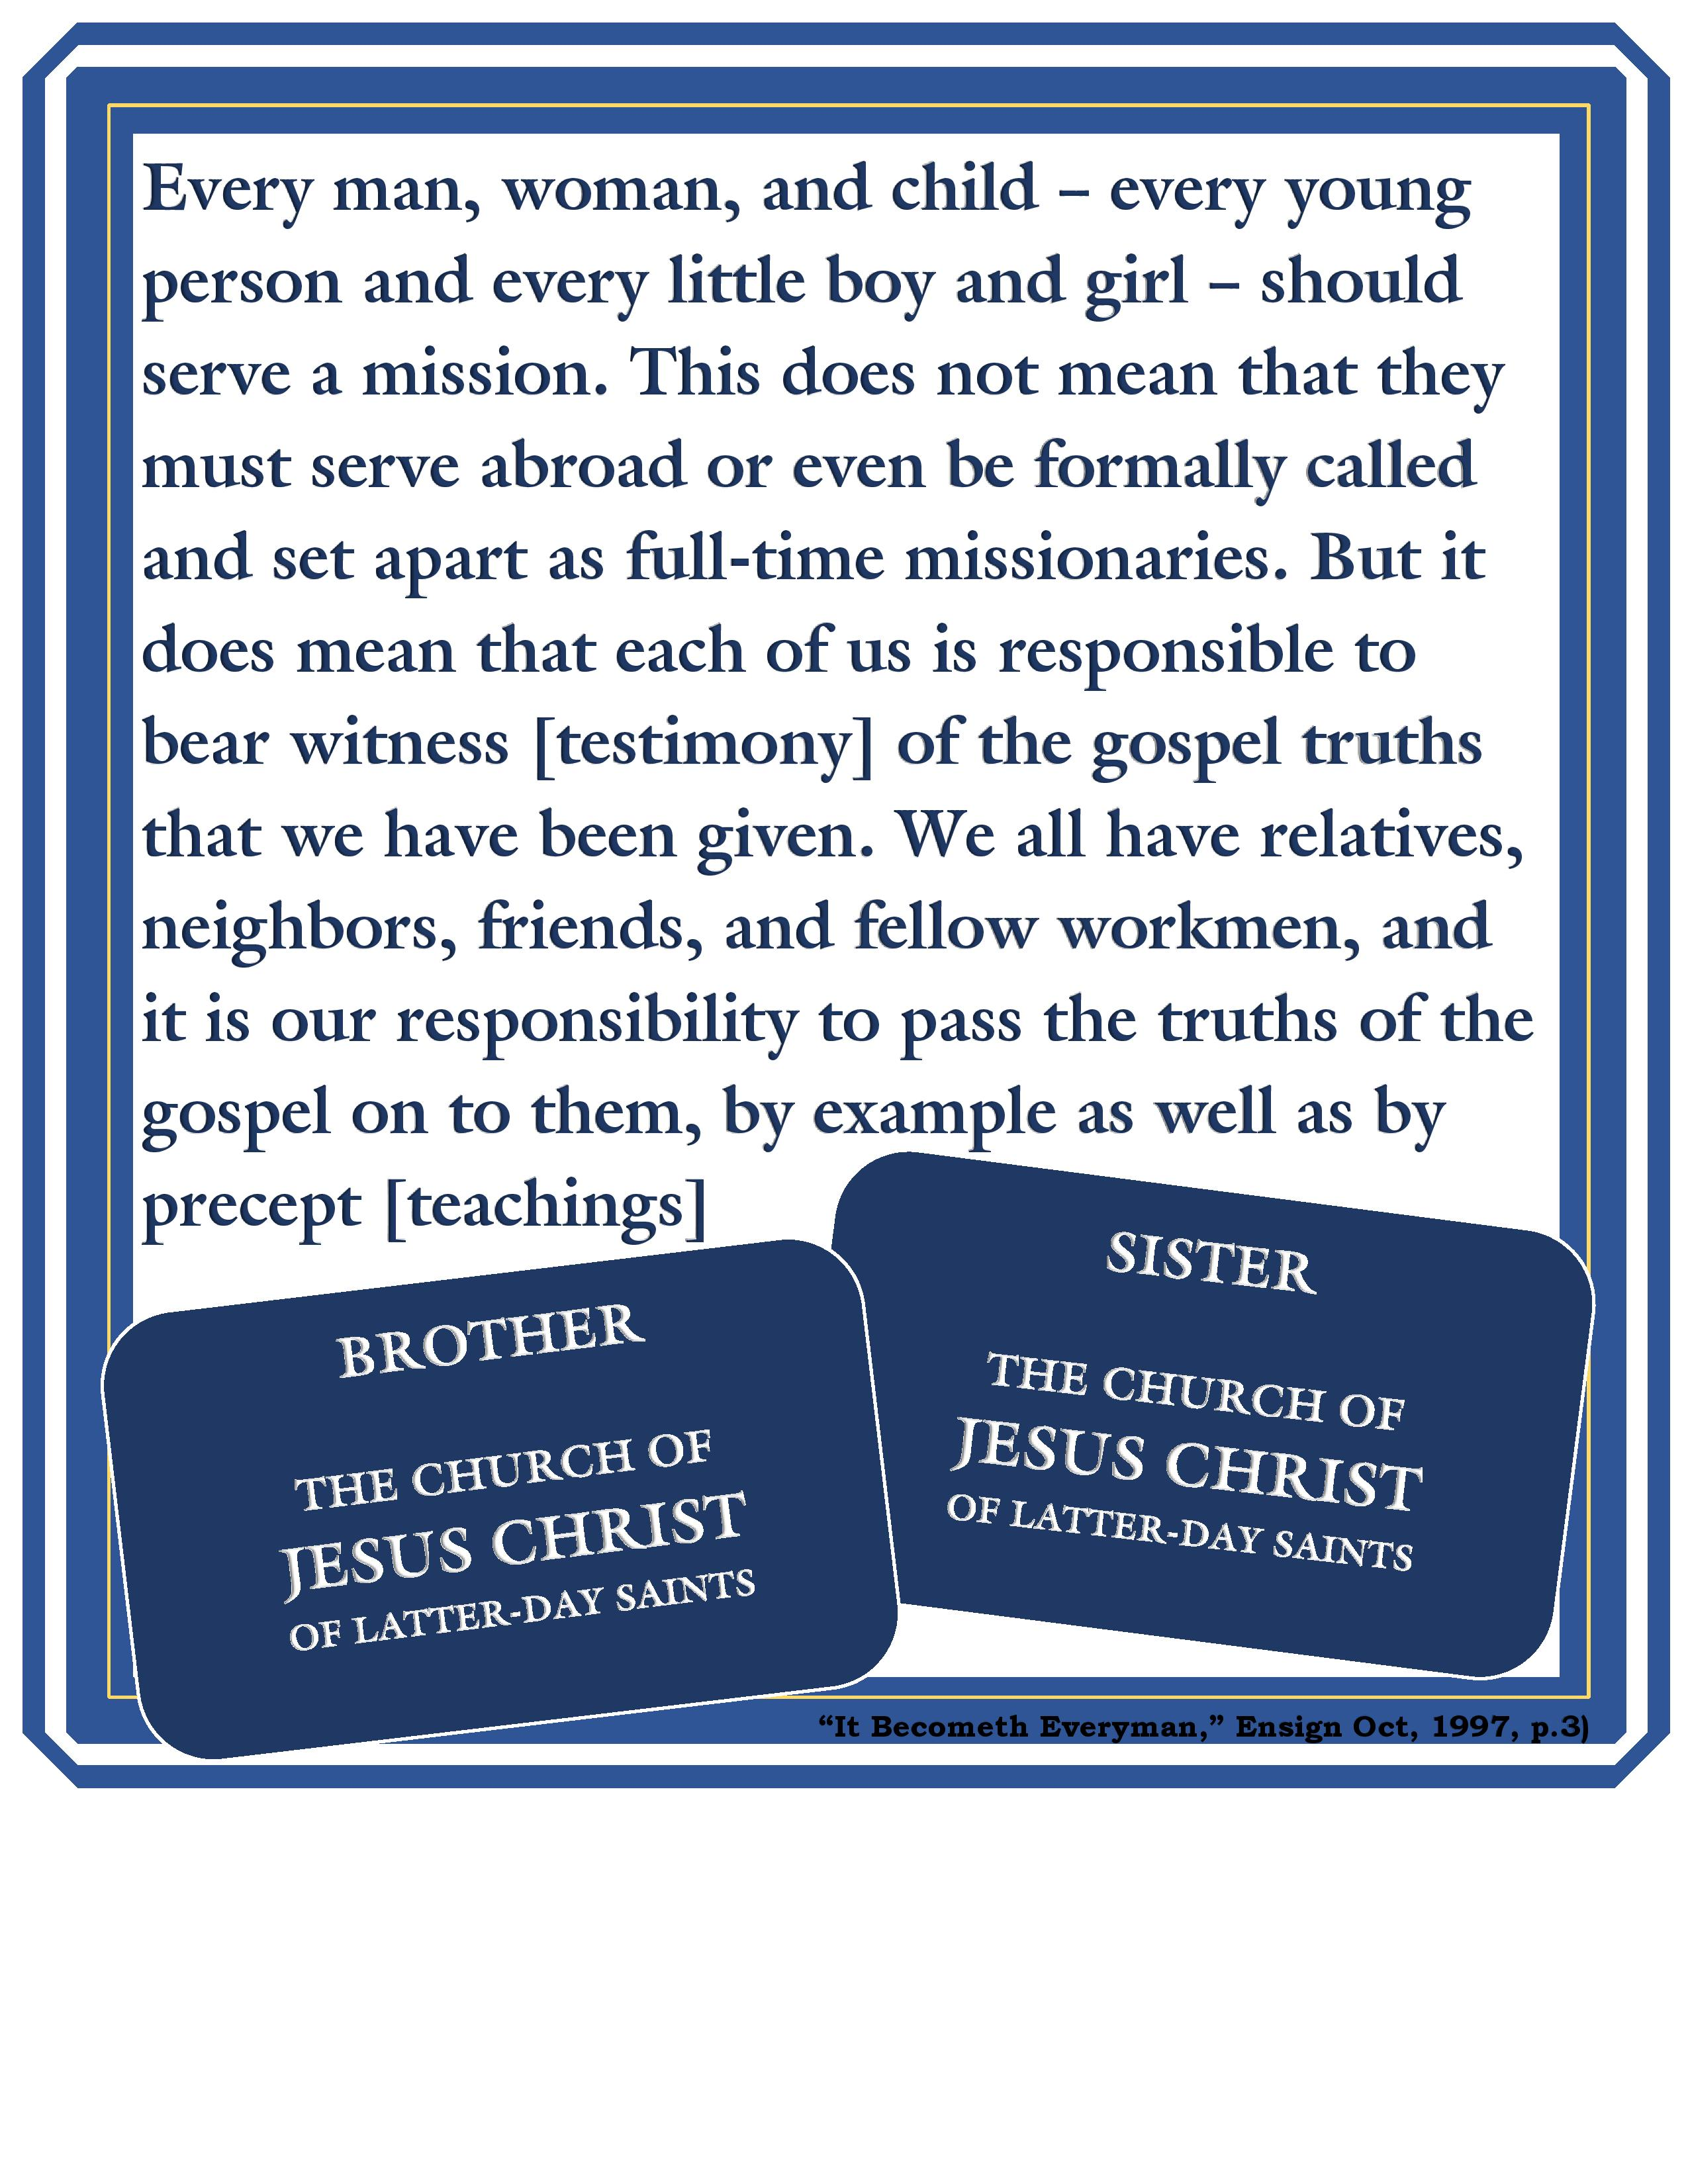 Primary 5 Lesson 29 - Missionaries Go to Other Nations